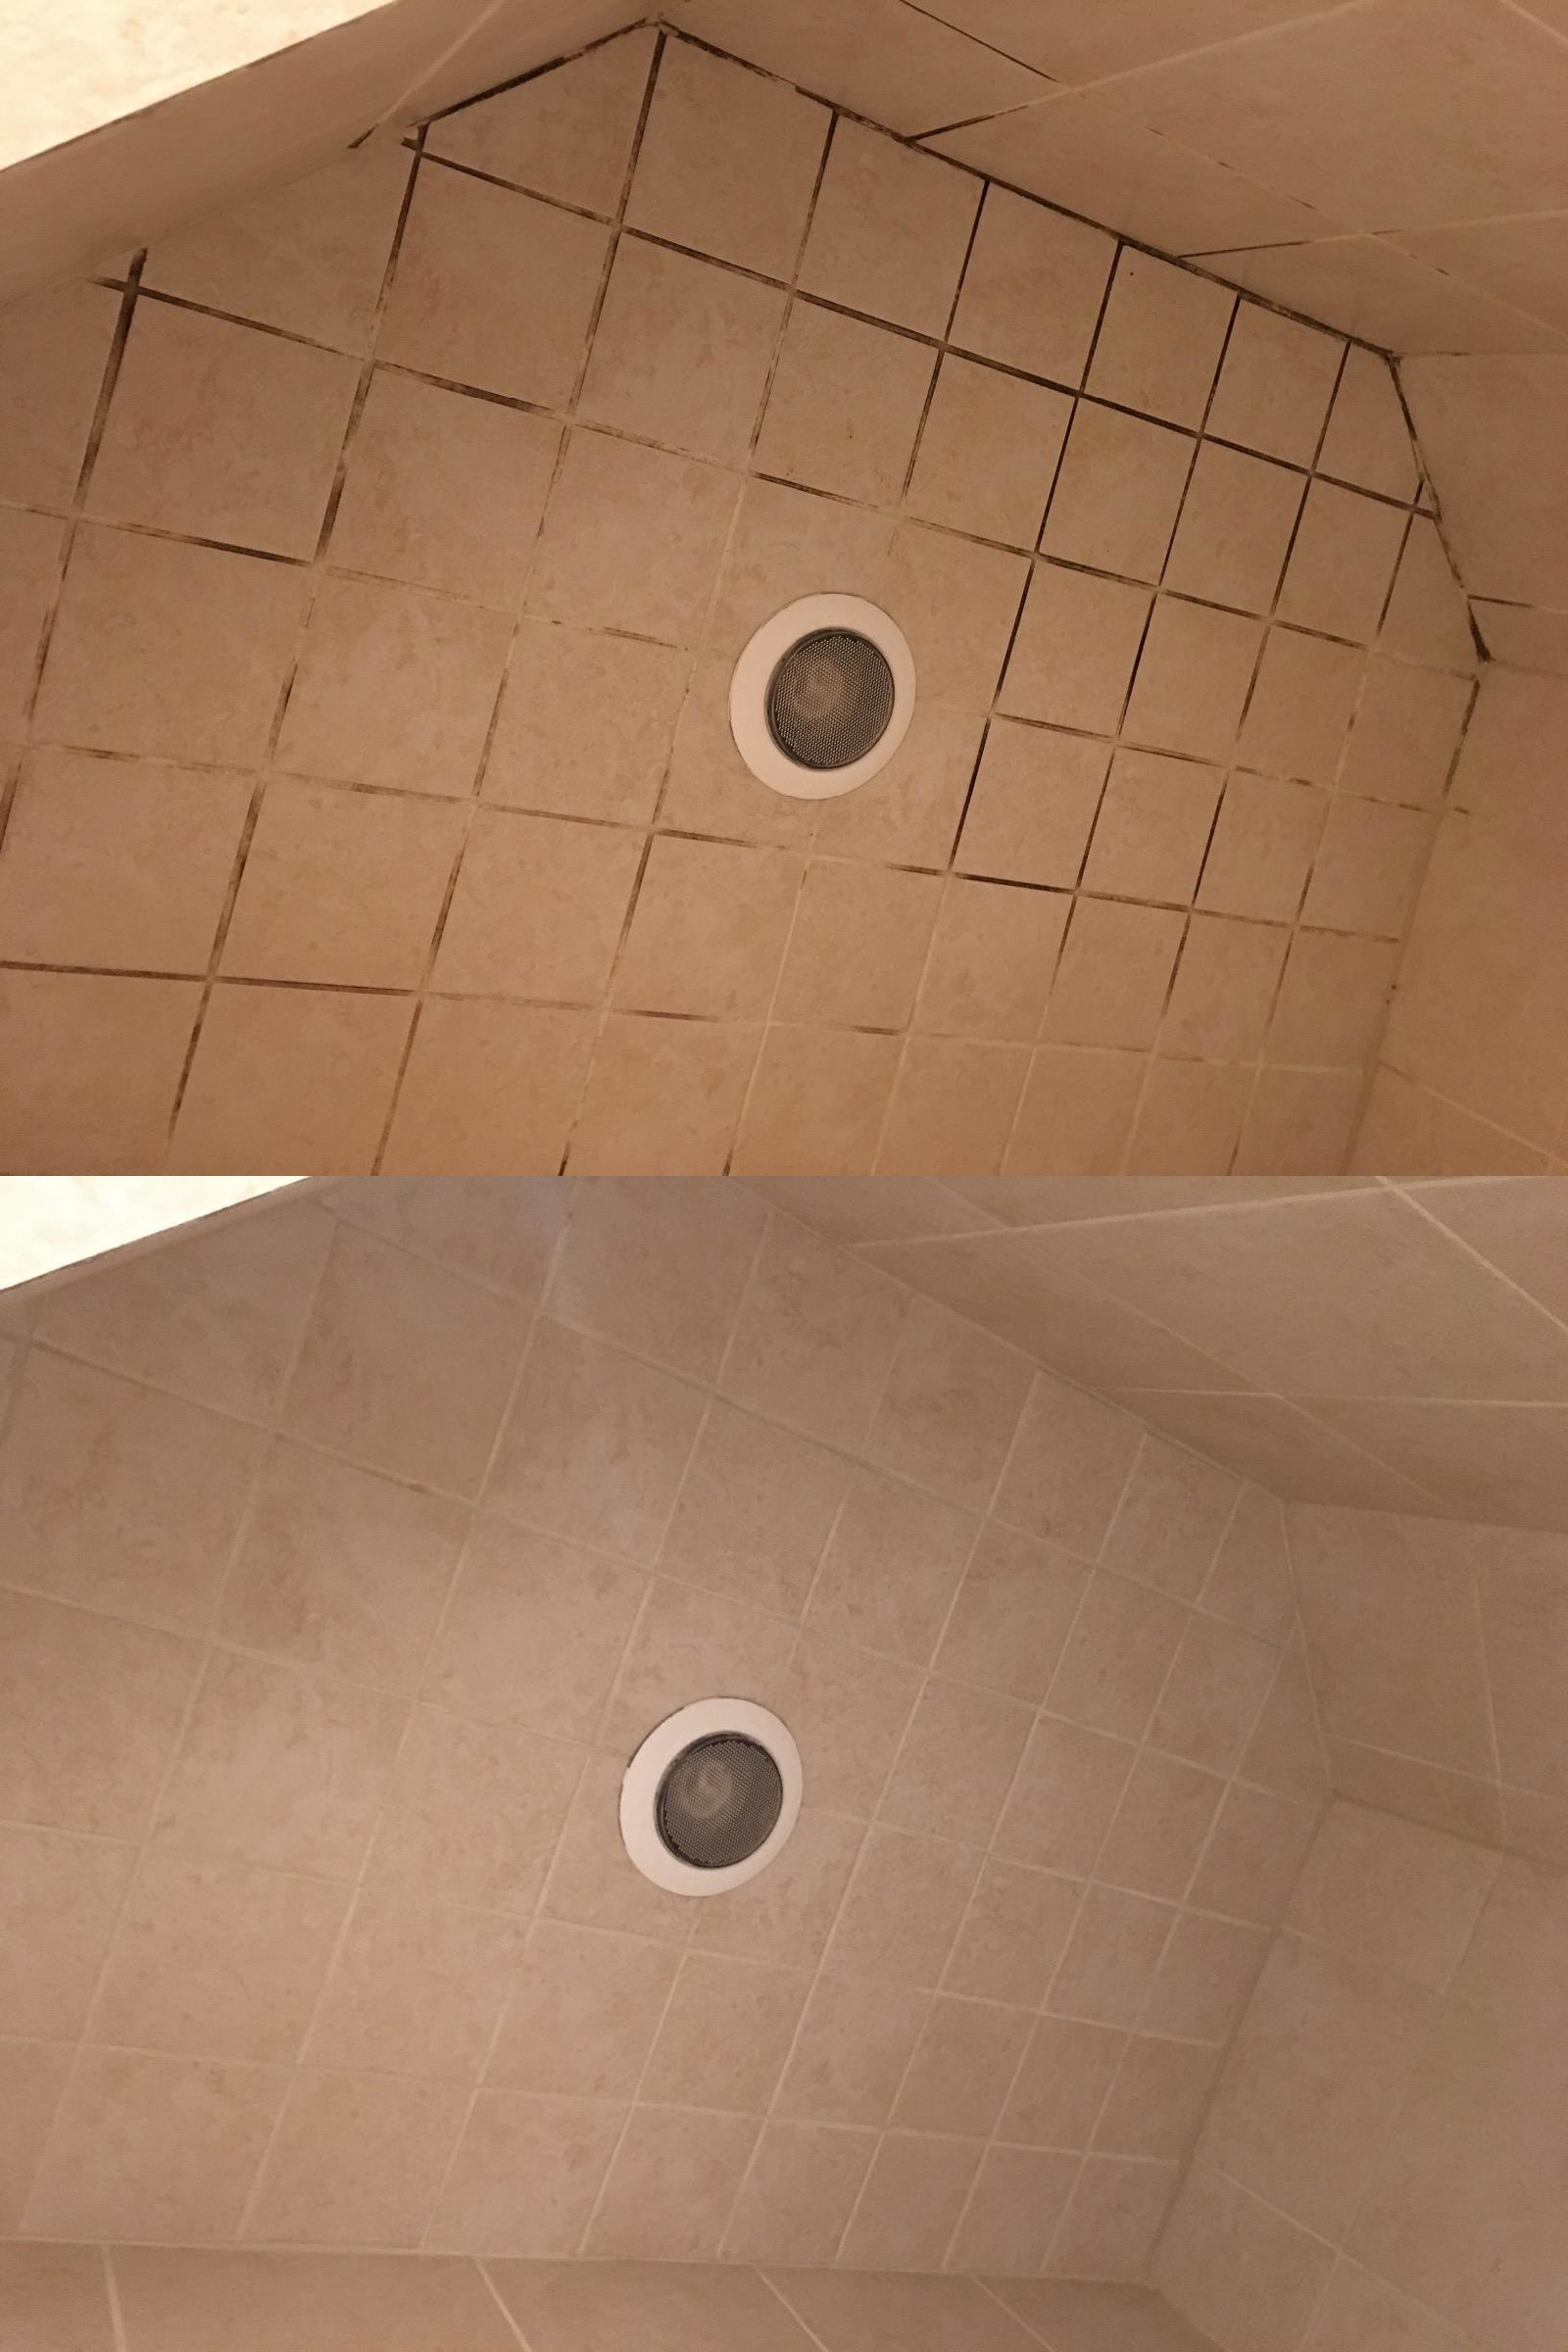 a reviewer's before and after photo of moldy tile coming clean after use with the spray